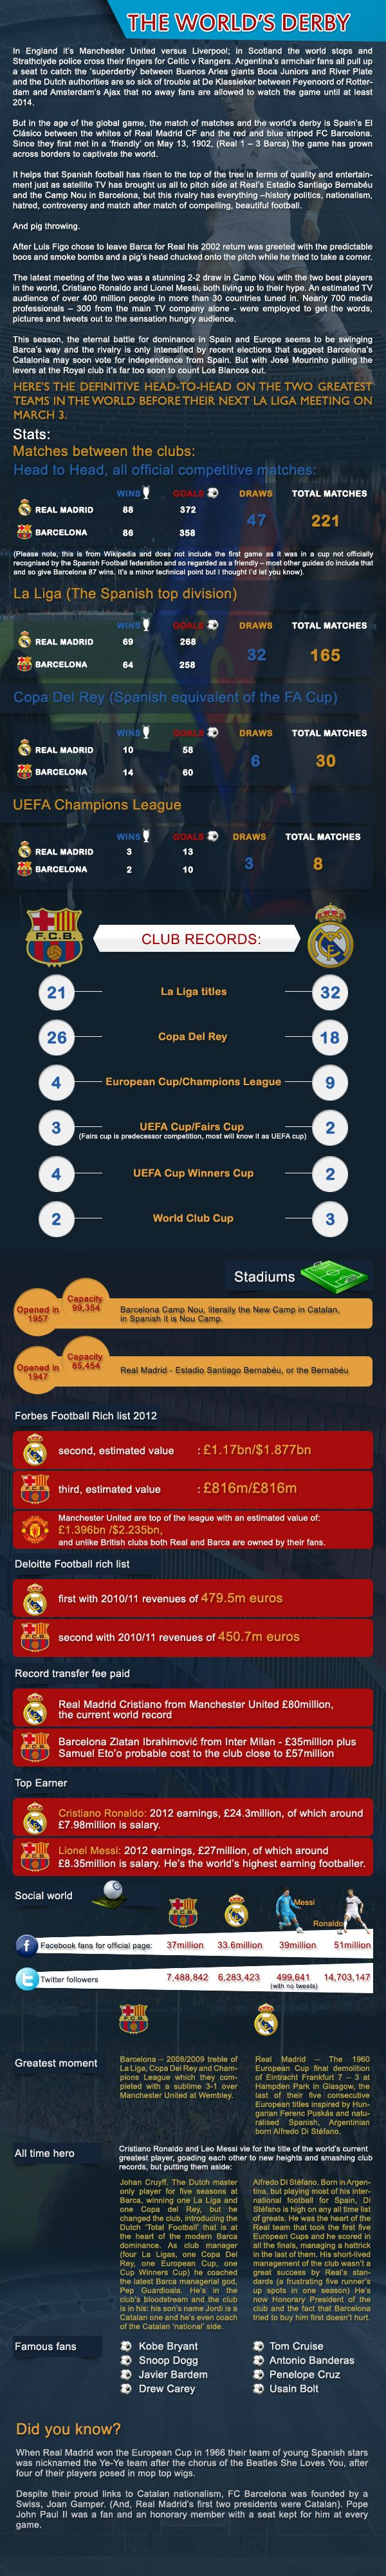 Show me some soccer love • Barcelona vs Real Madrid #infographic